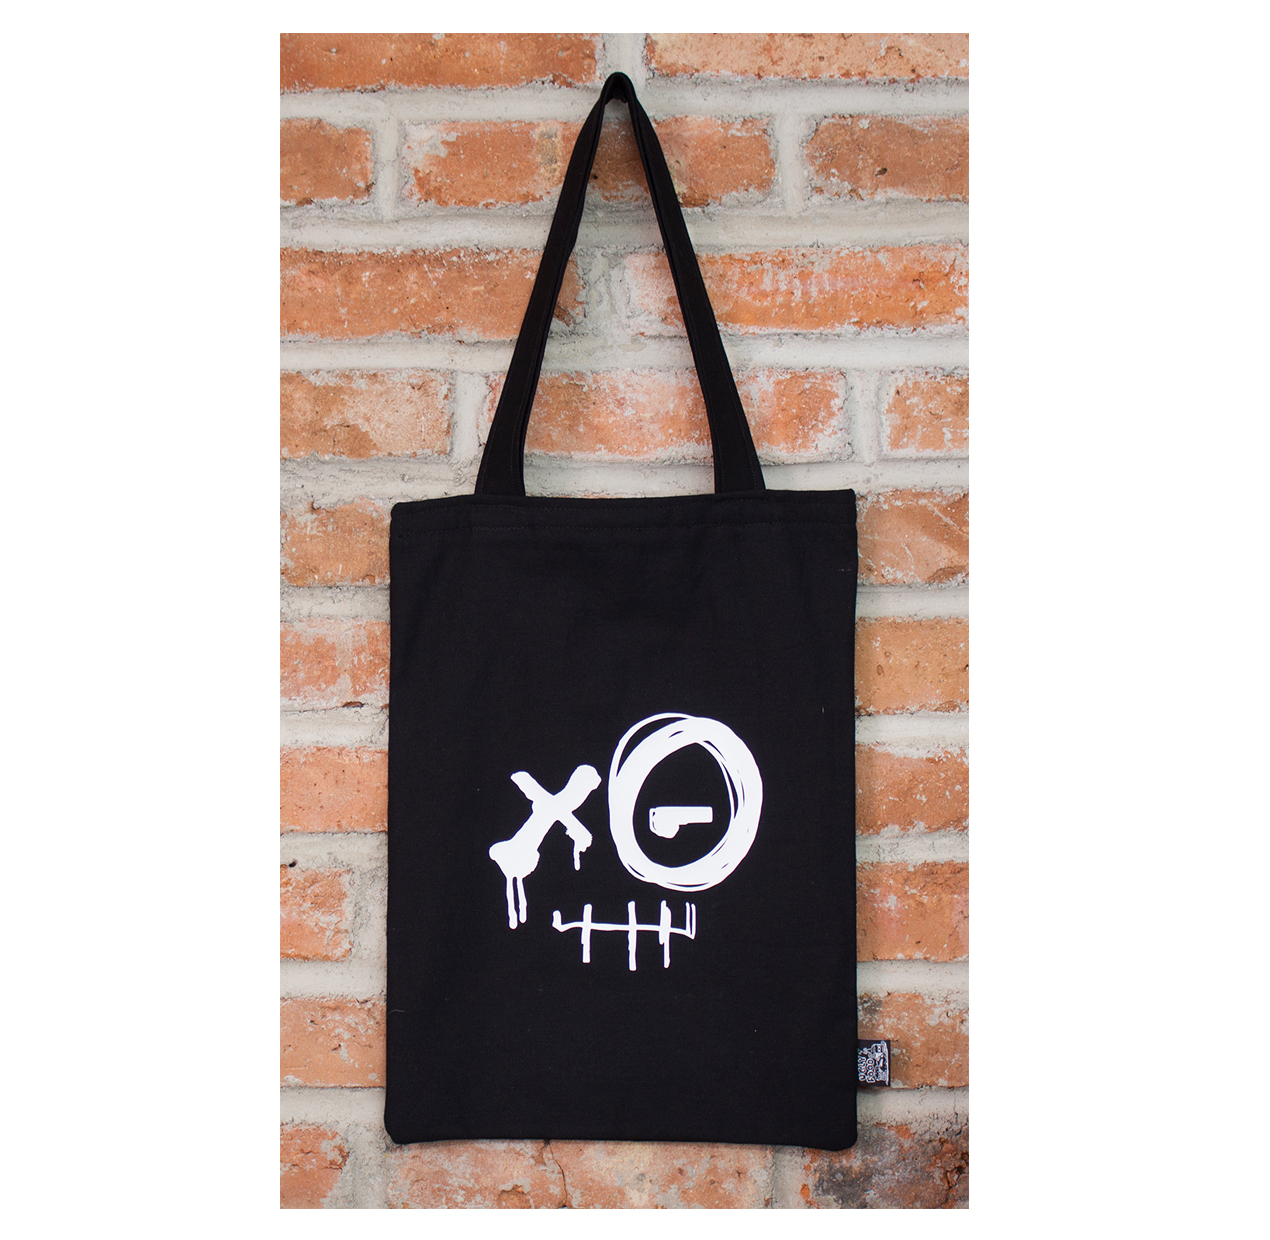 PLAY DIRTY totebag FRONT instagram